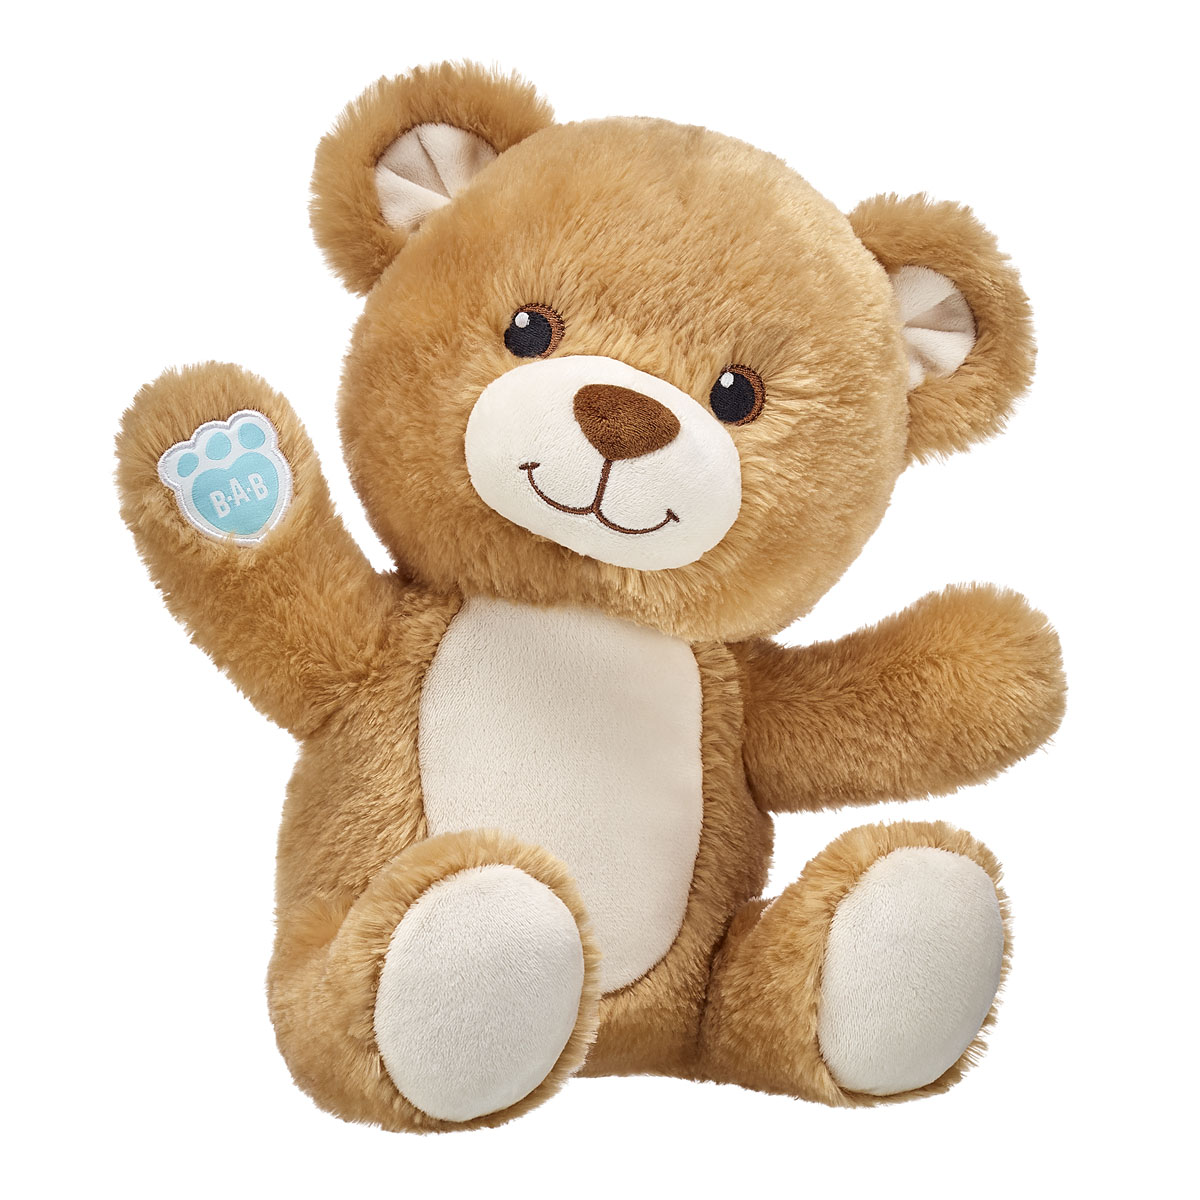 Personalized Teddy Bear For Babies